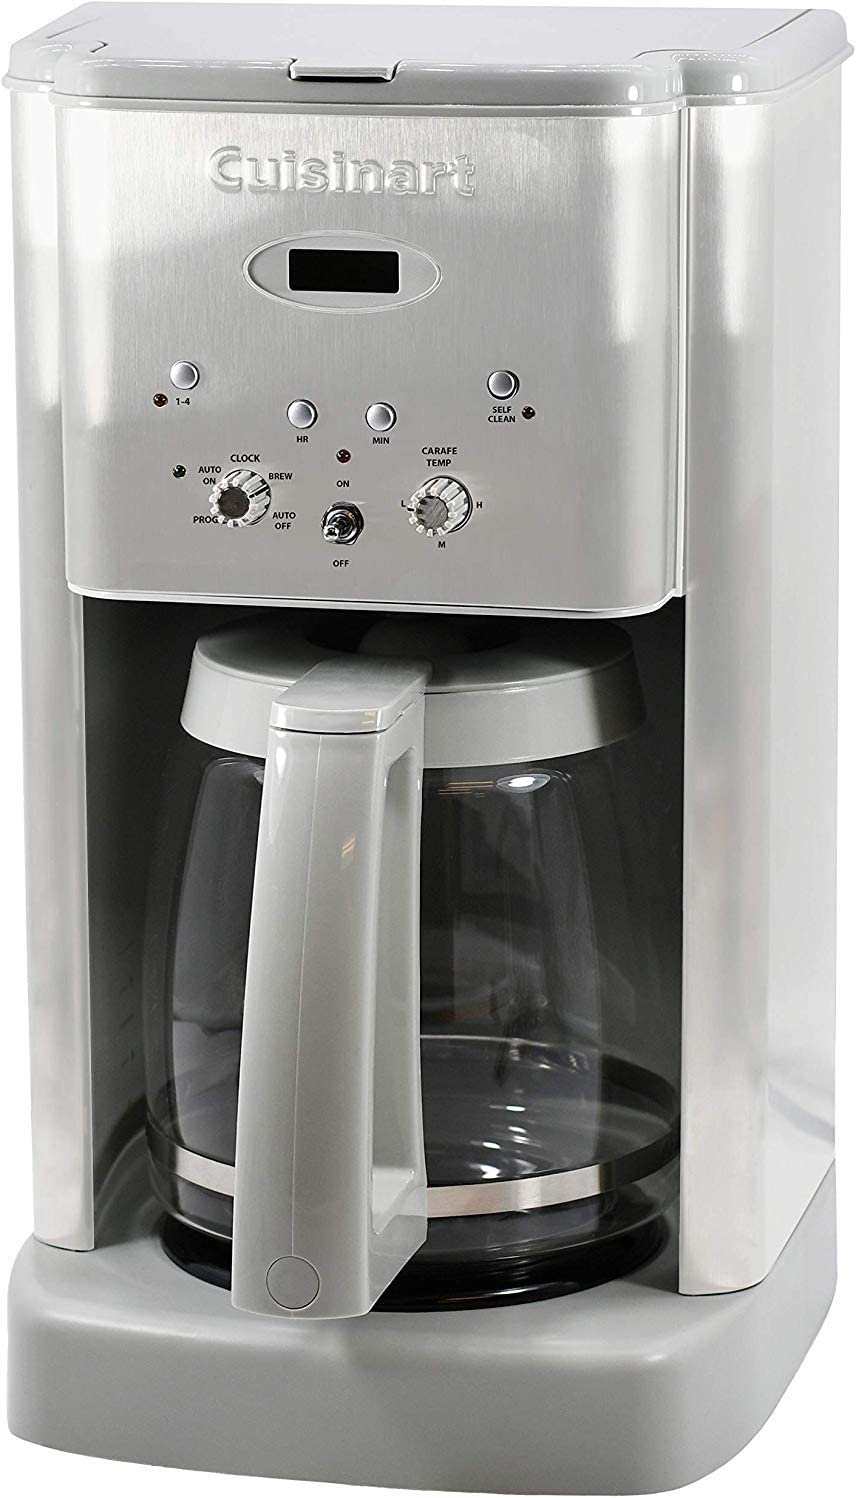 Cuisinart DCC-1200CGR Brew Central 12 Cup Programmable Coffeemaker, Light Grey